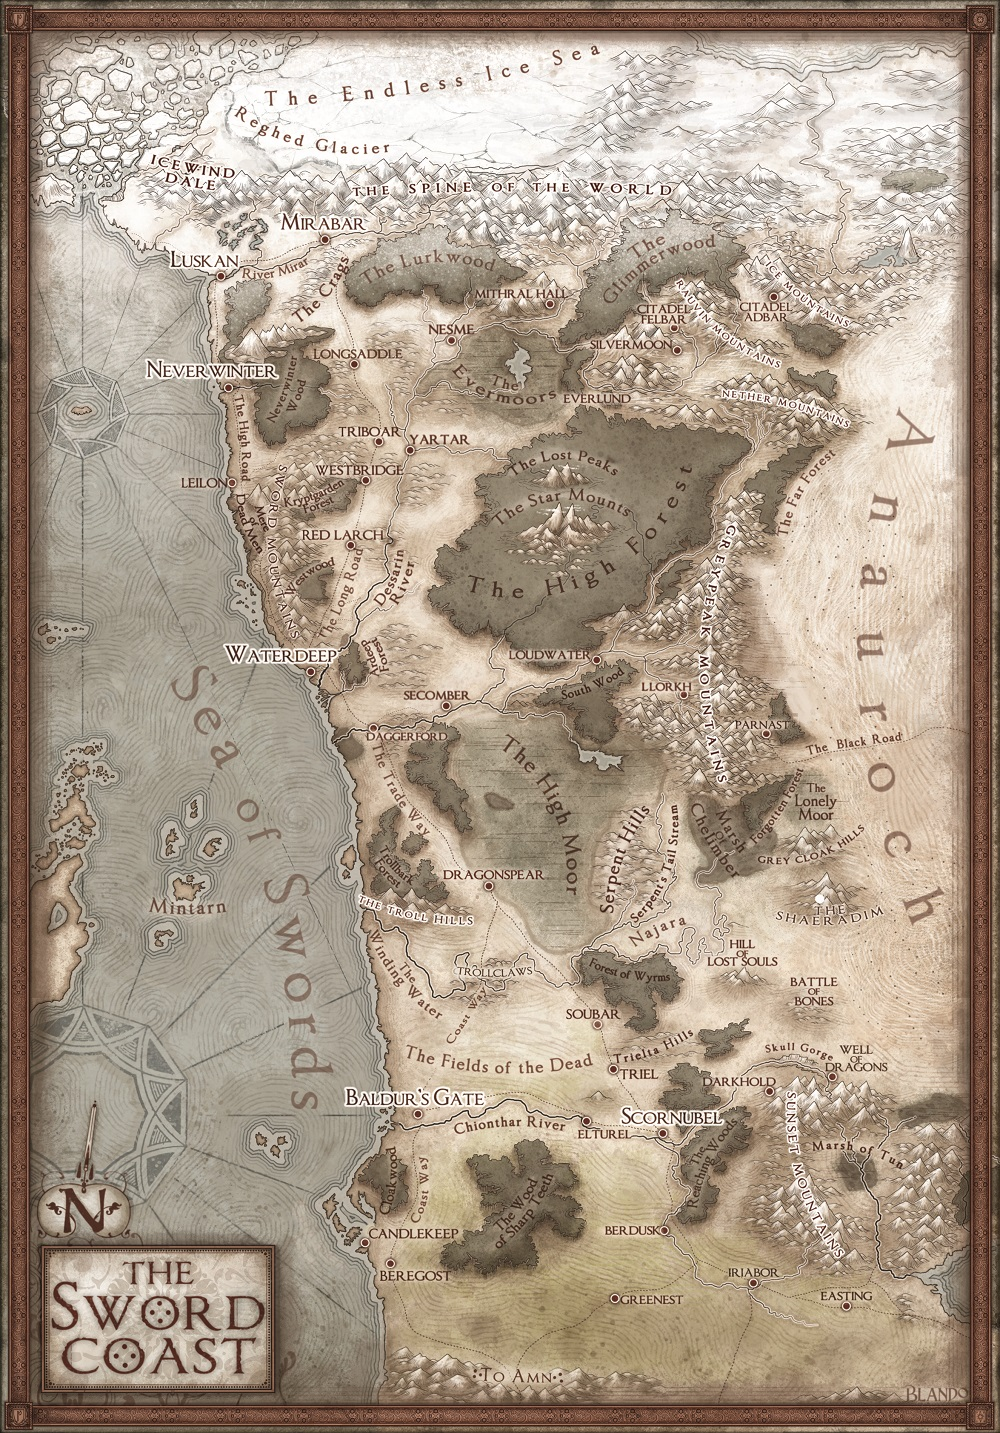 The Sword Coast includes such hubs of adventure such as Neverwinter, Icewind Dale, the Silver Marches, and Baldur's Gate.